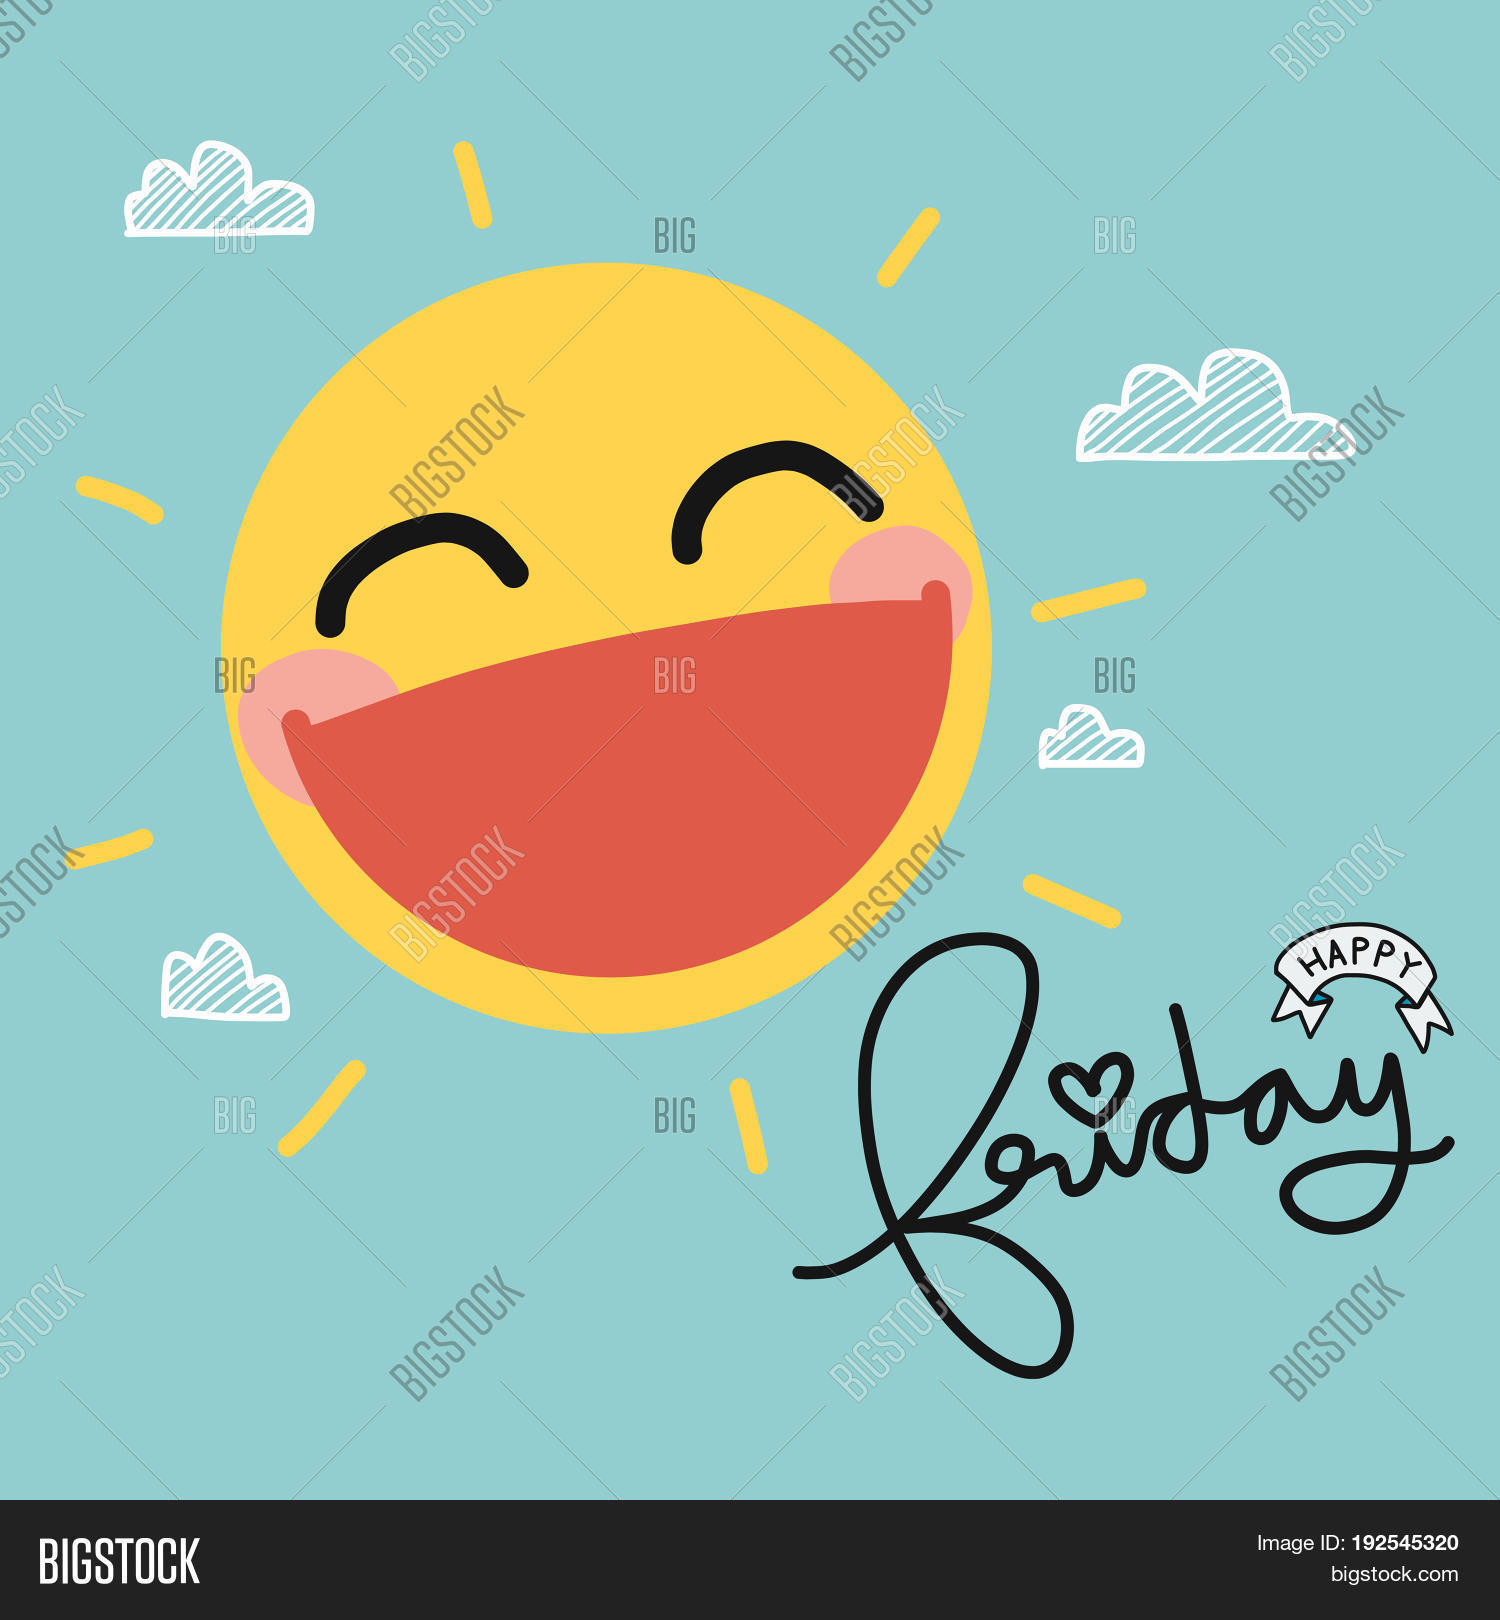 Happy Friday Sun Smile Image Photo Free Trial Bigstock